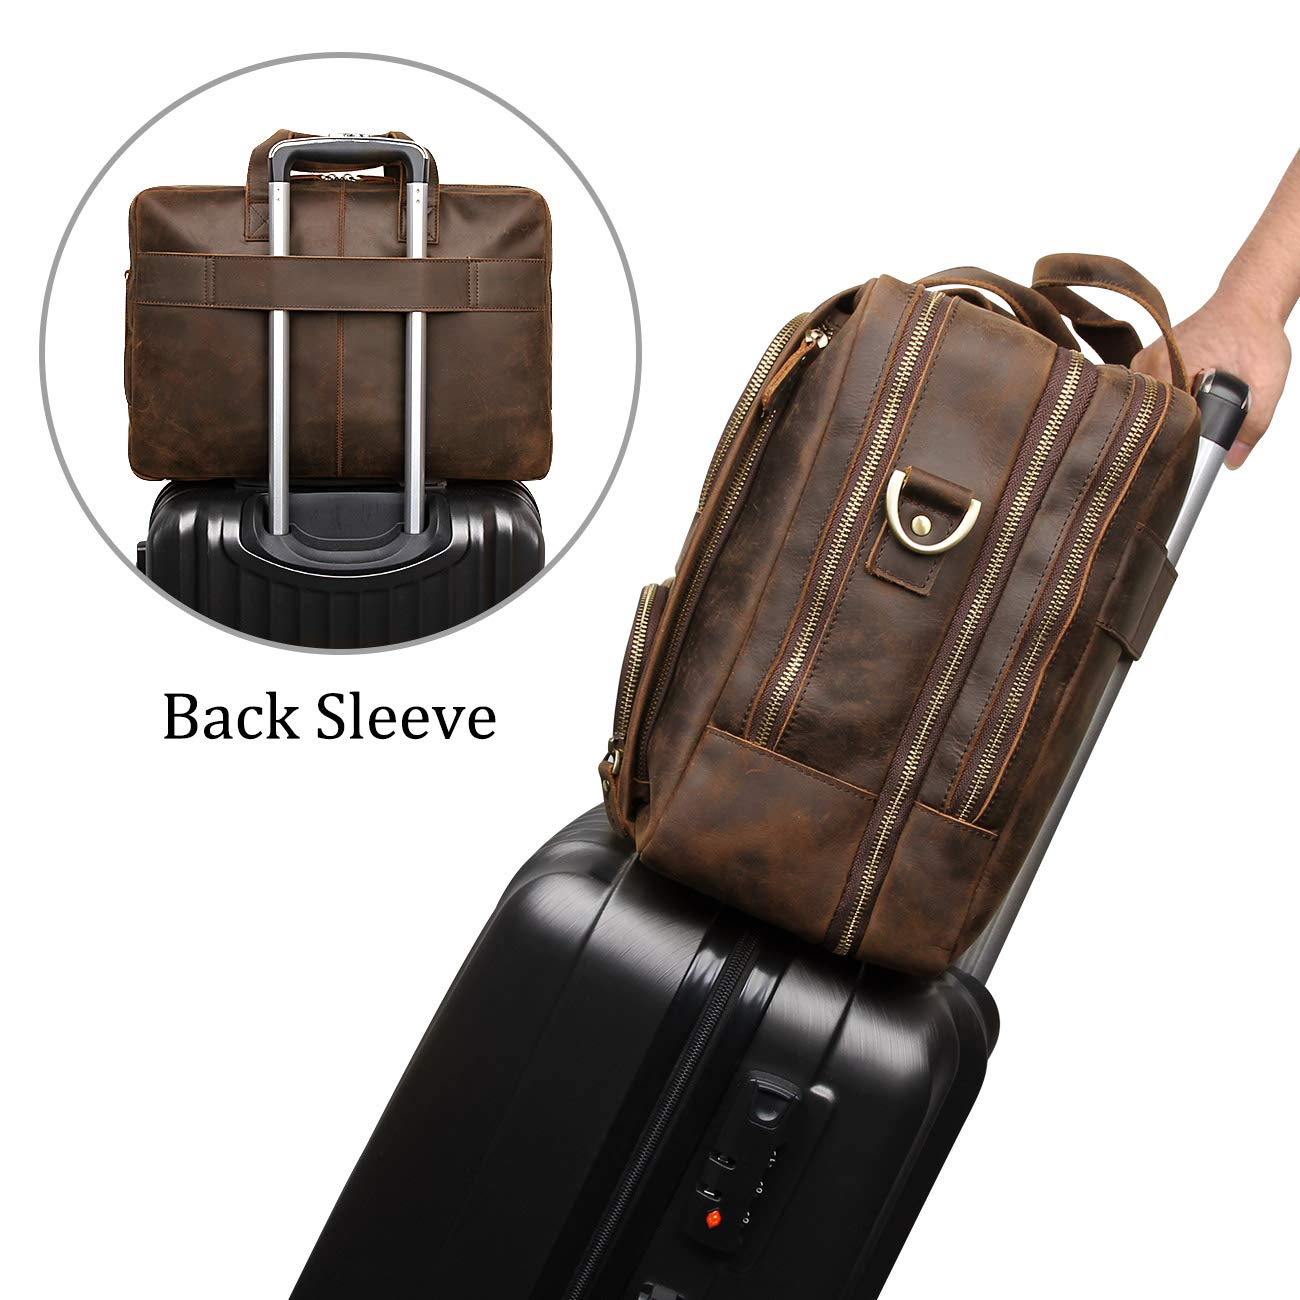 Augus Business Travel Briefcase Genuine Leather Duffel Bags for Men Laptop Bag fits 15.6 inches Laptop by Augus (Image #2)